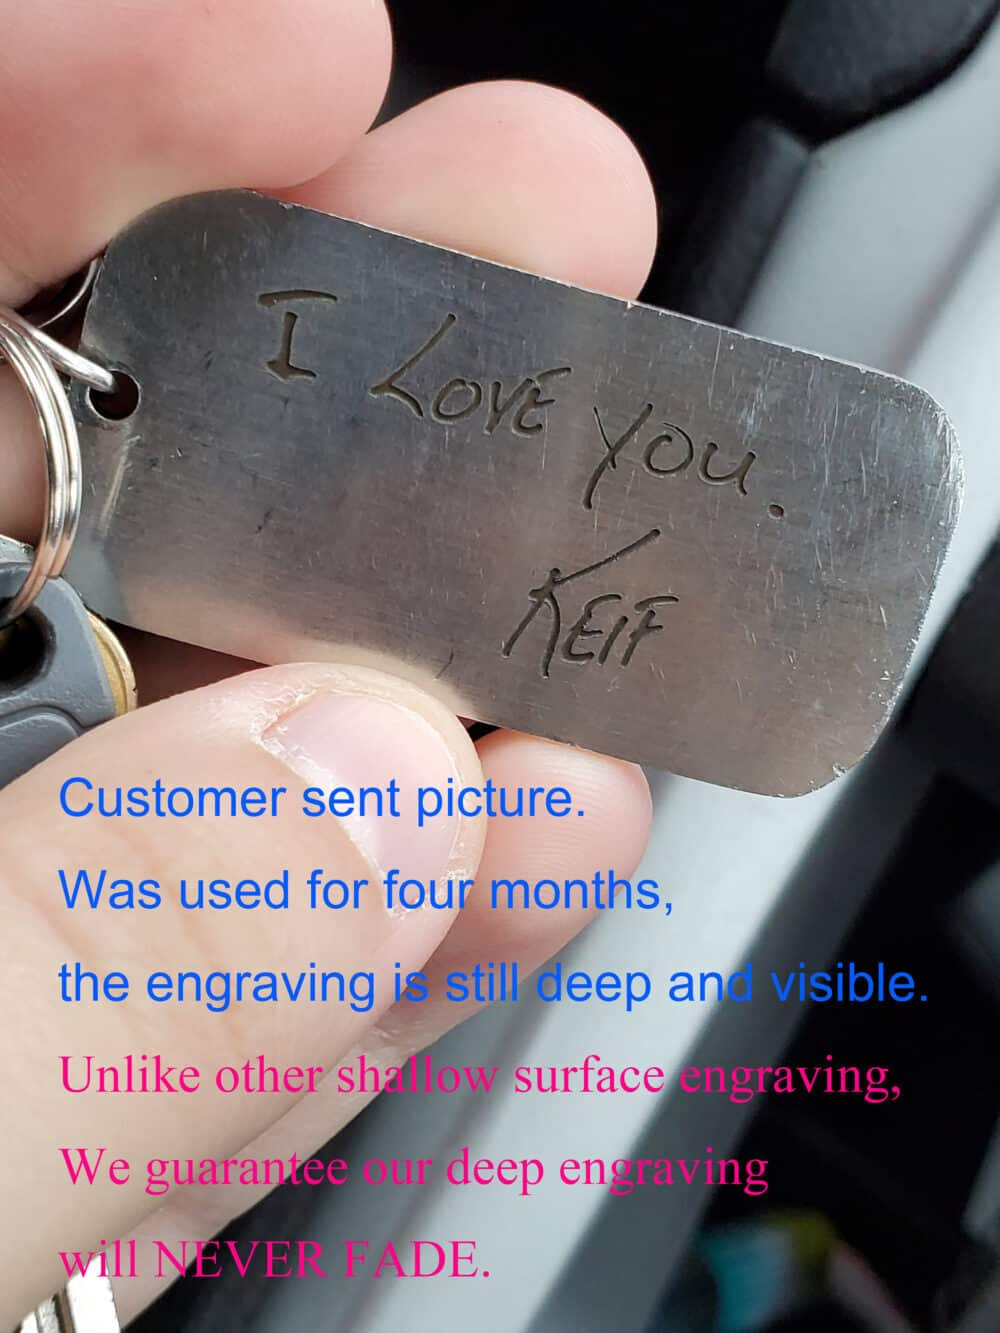 great engraving quality